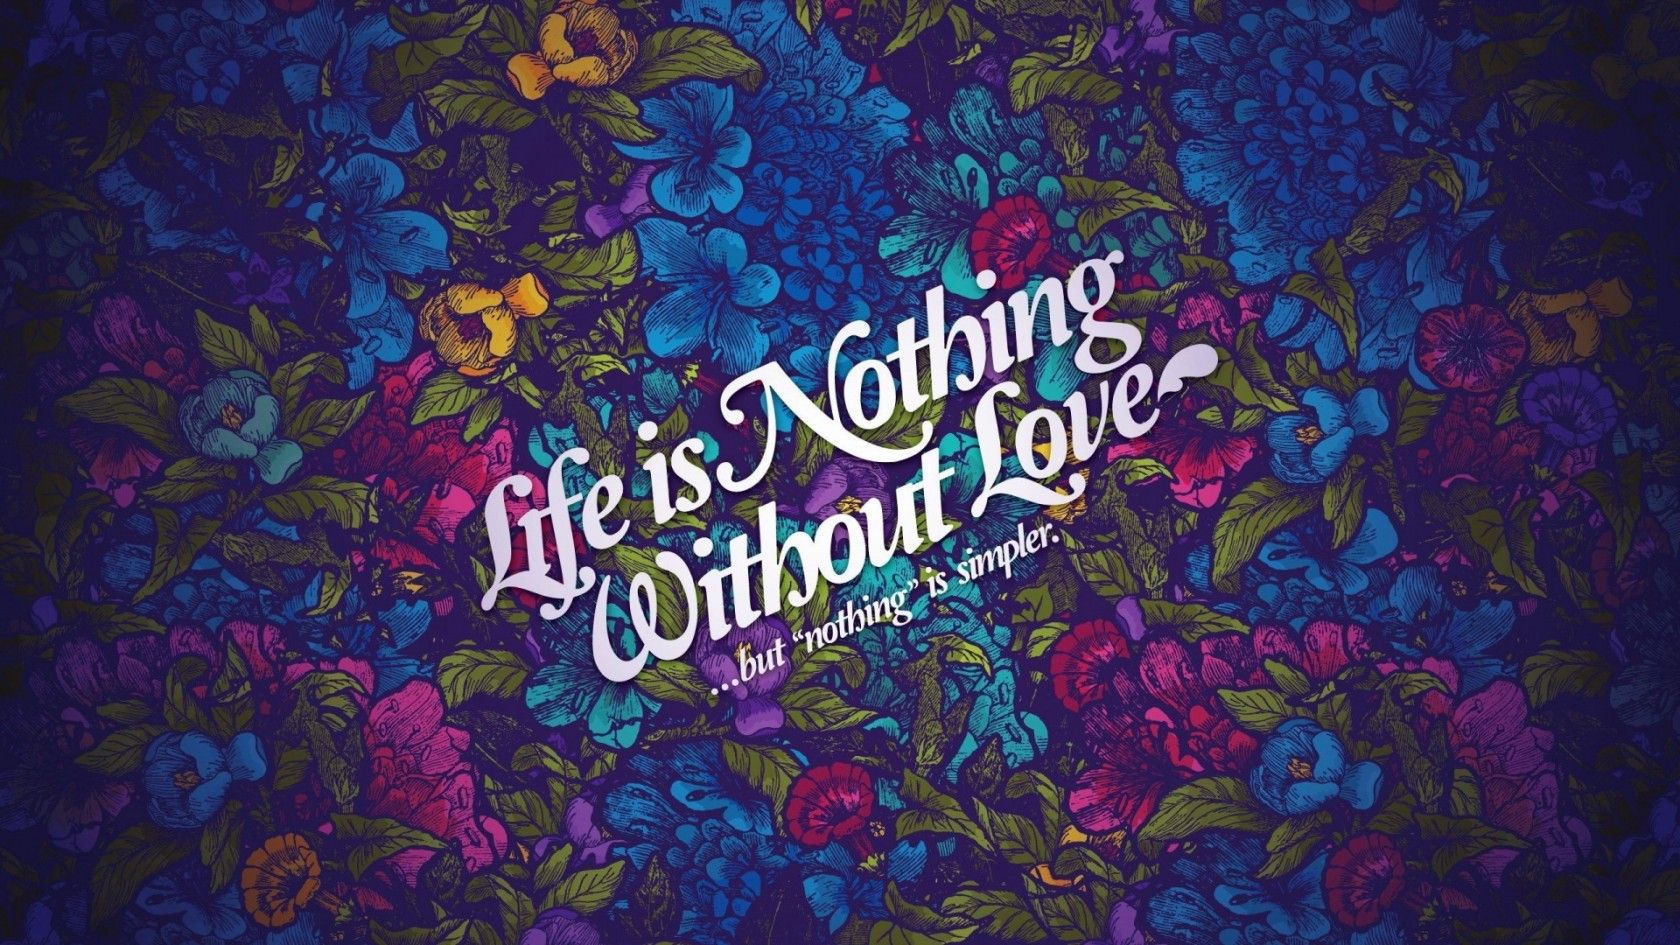 Galaxy wallpaper tumblr quotes iphone - Nice Lovely Life Quotes Photo On Love